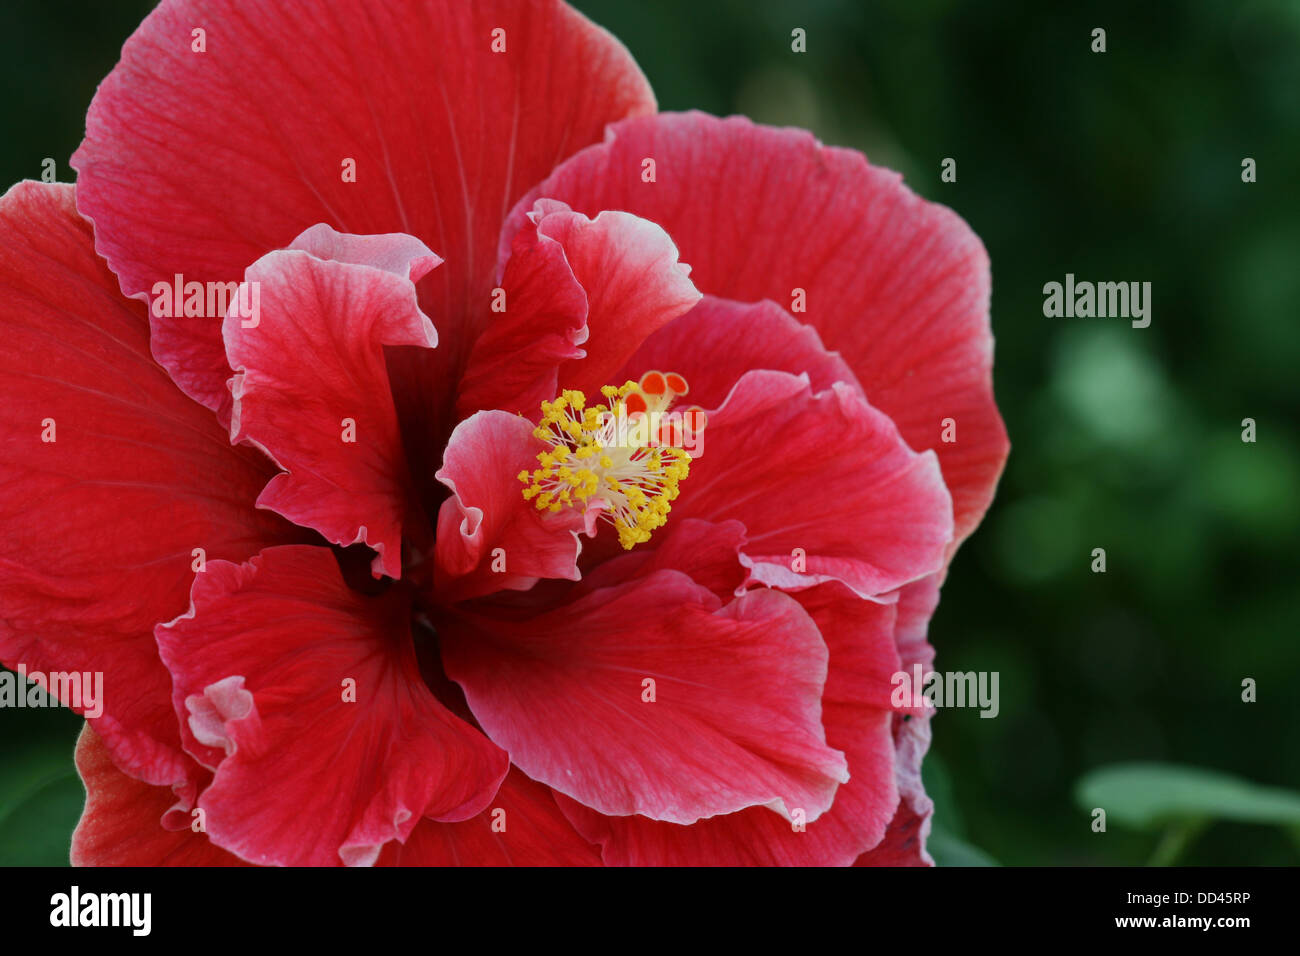 Close up image of a double red hibiscus flower stock photo royalty close up image of a double red hibiscus flower izmirmasajfo Image collections